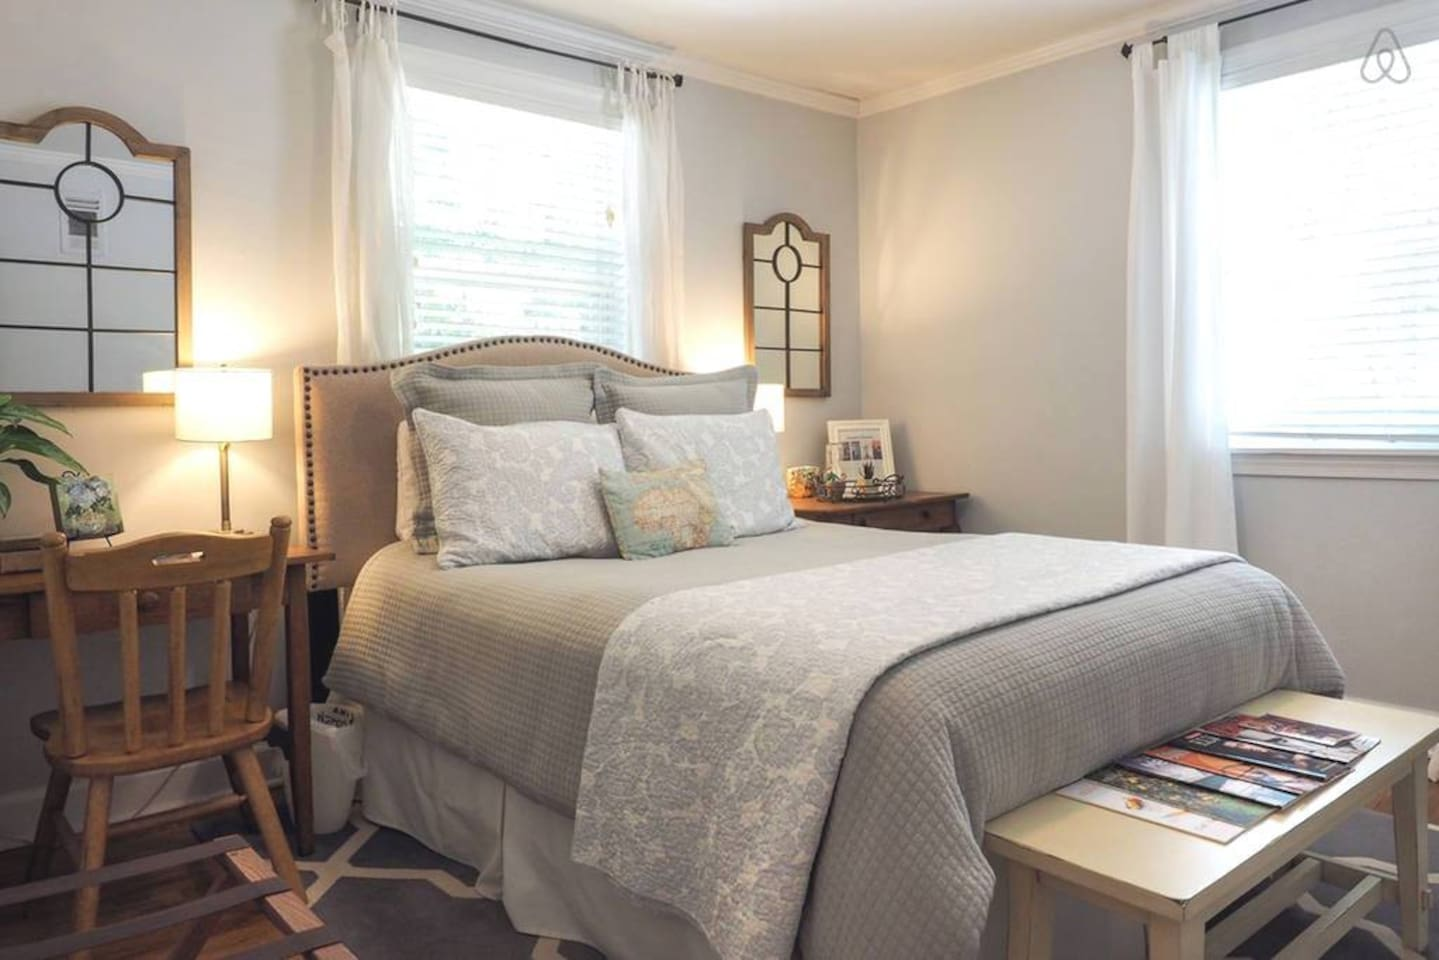 Bedroom 1 with a comfortable queen bed.